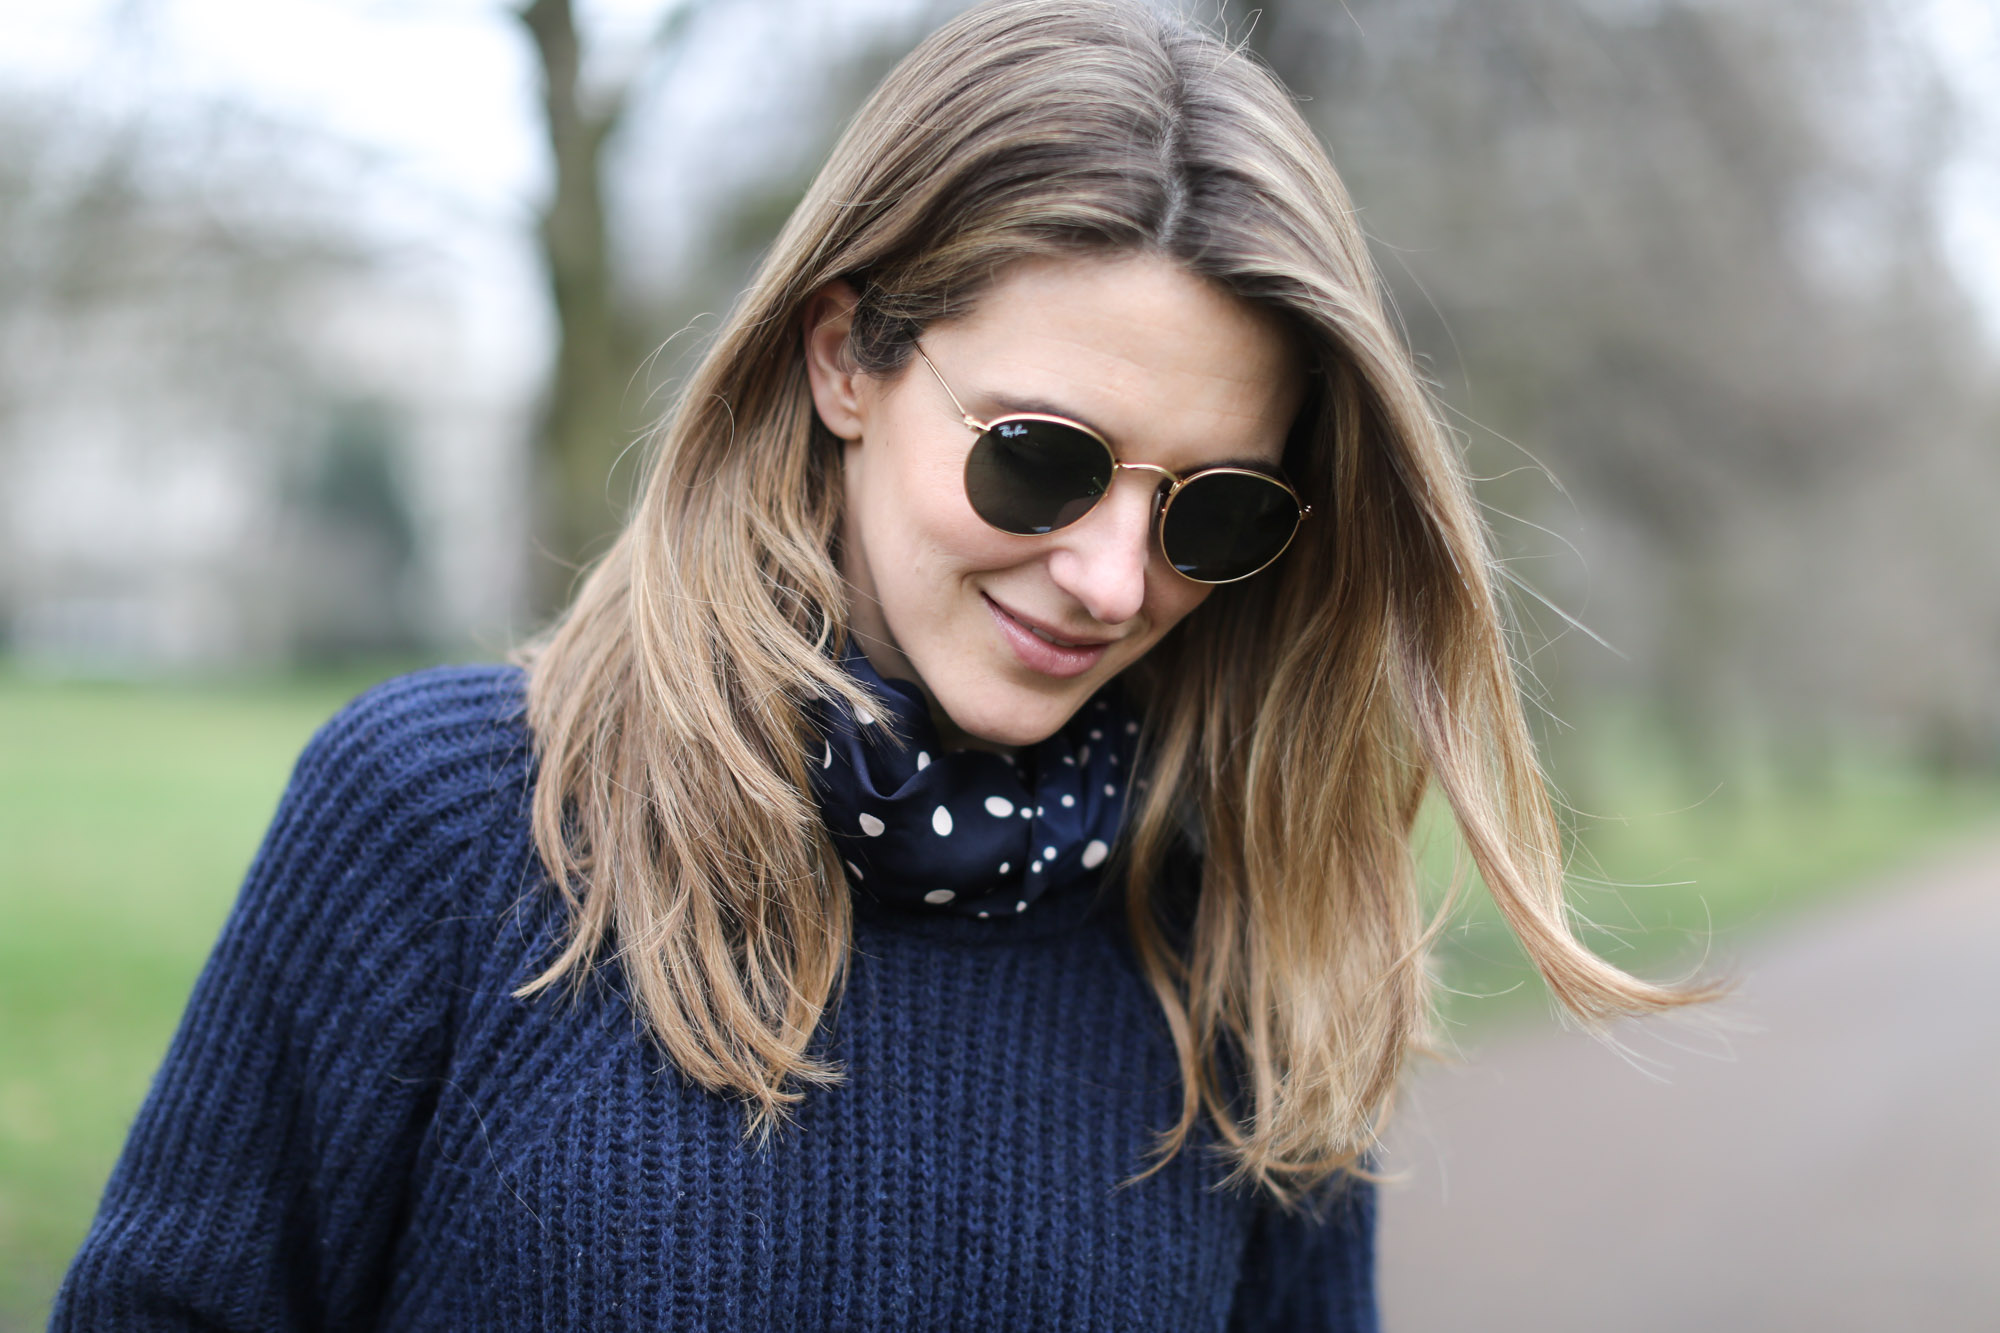 Clochet-streetstyle-london-hyde-park-cos-coat-navy-chunky-knit-8